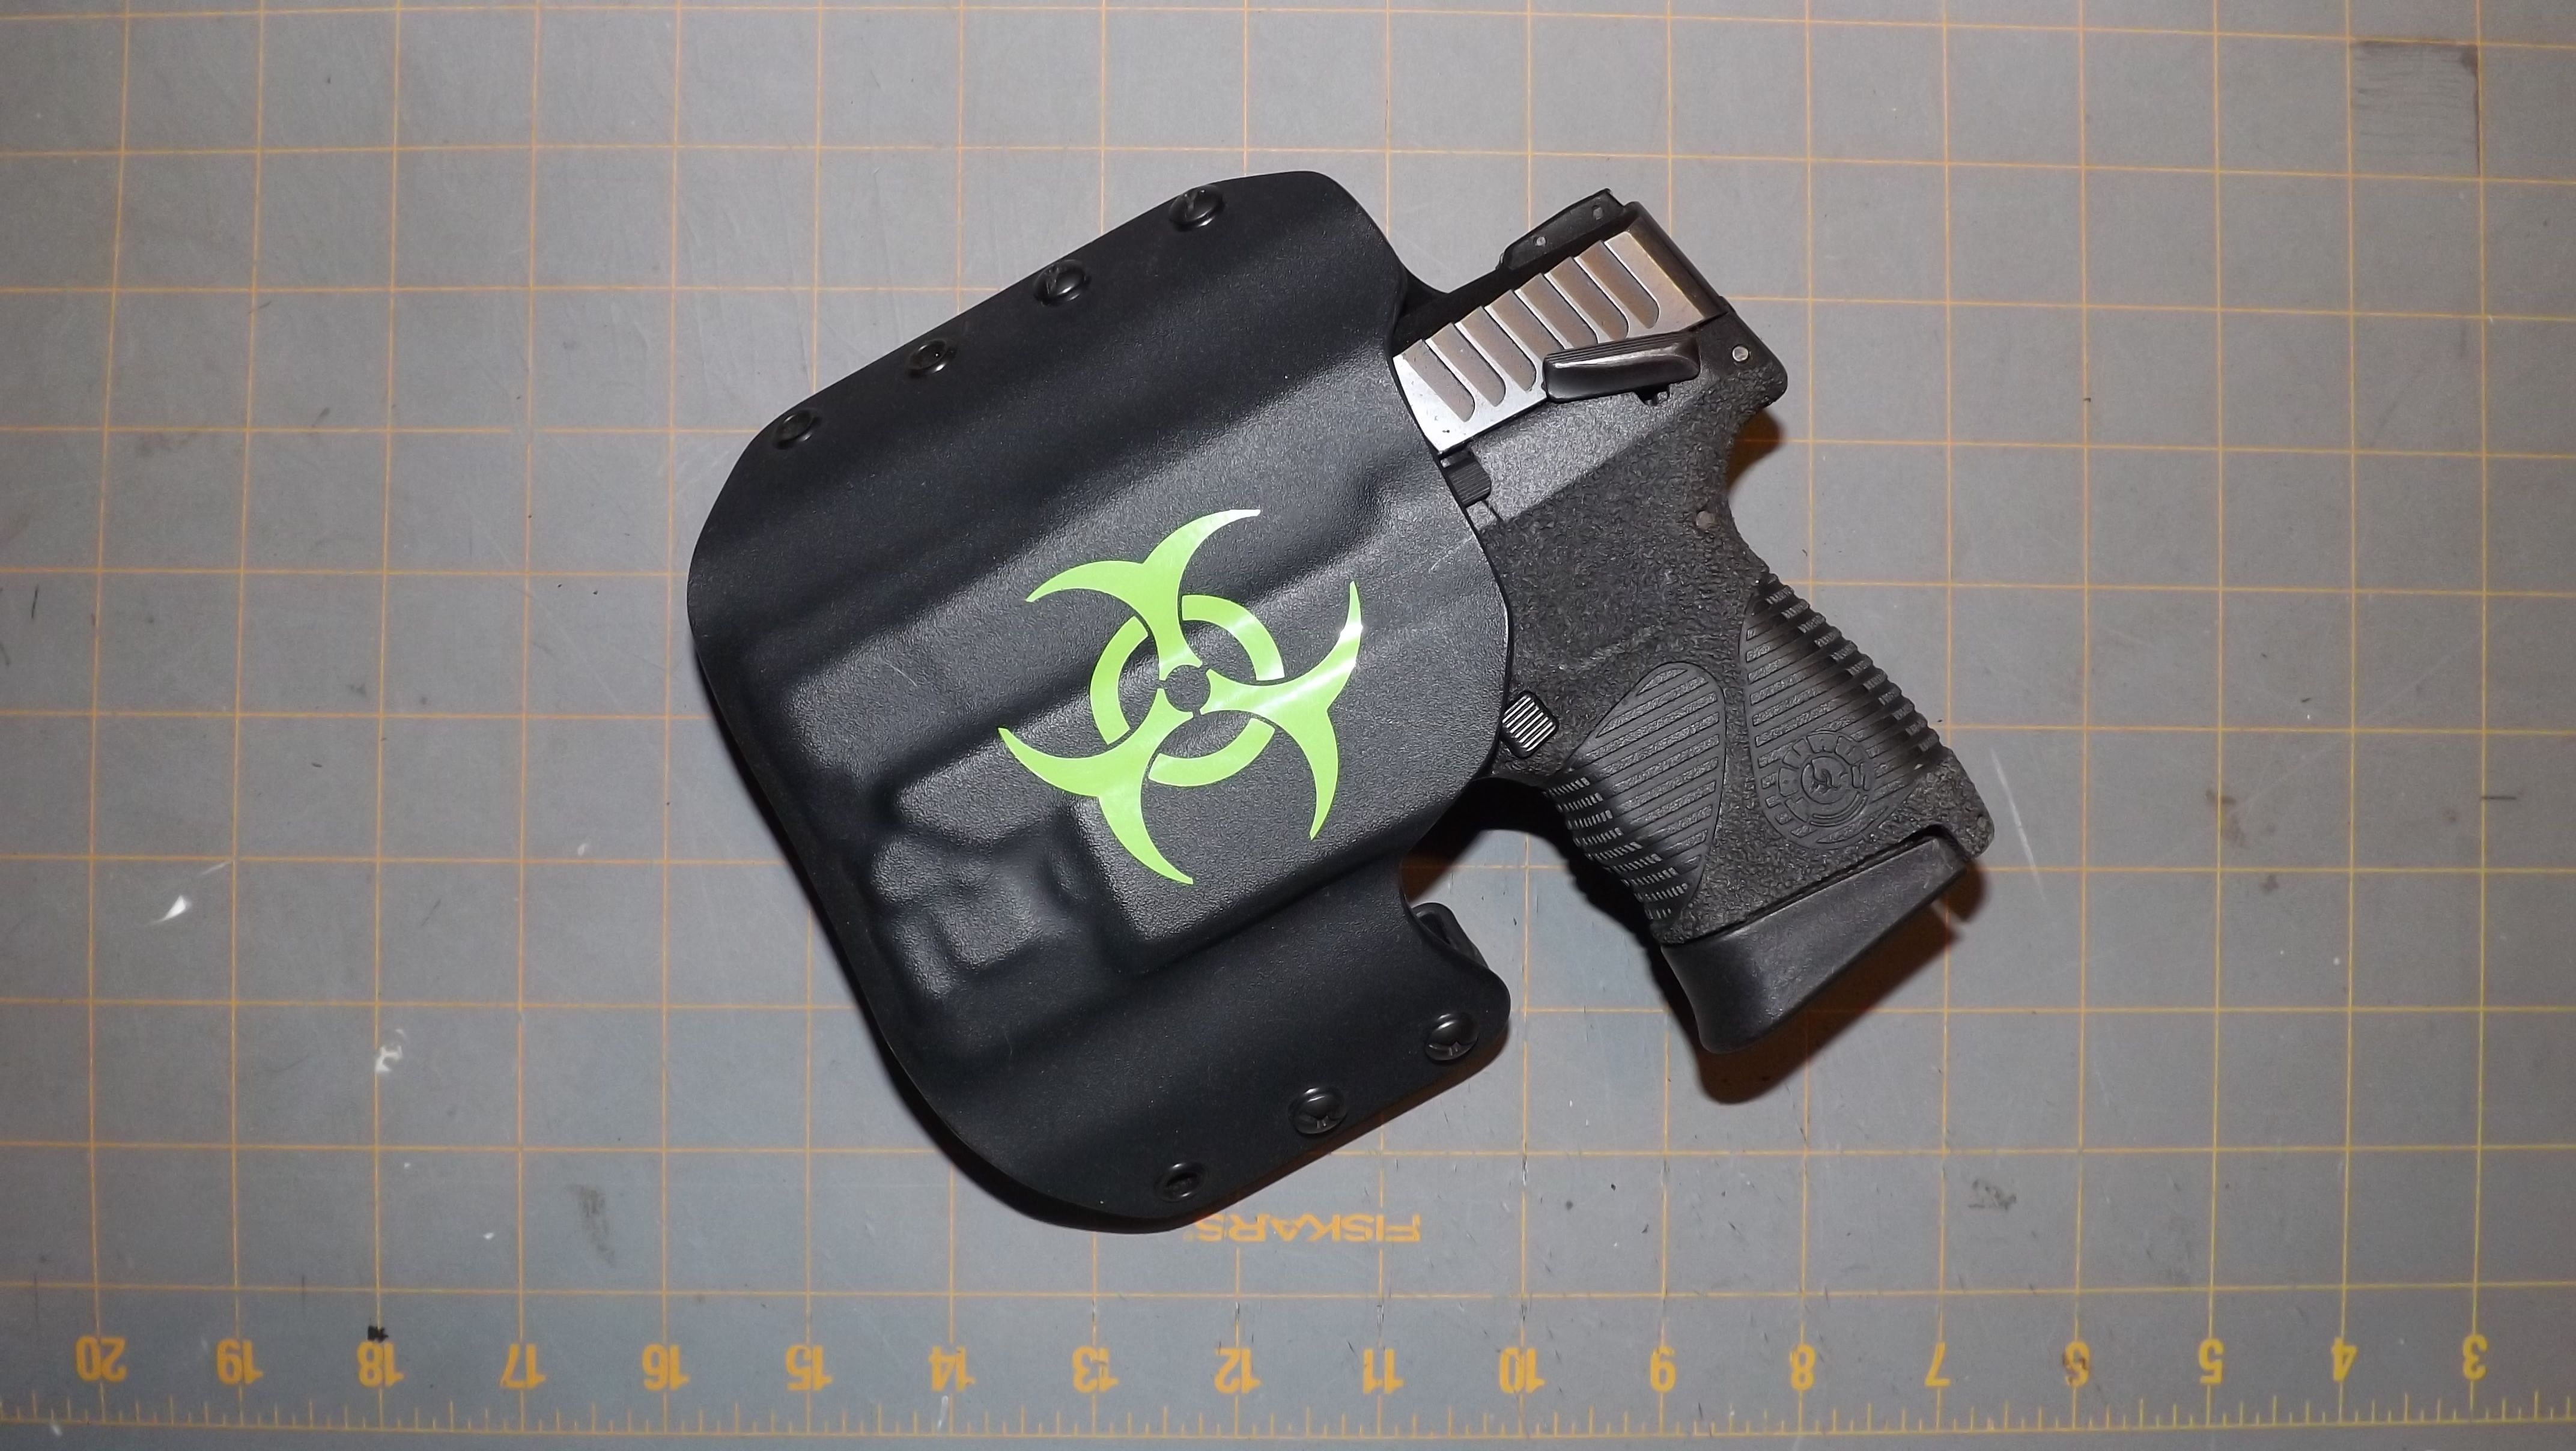 Pin by Dave Richardson on Taurus G2C 9mm | Zombie weapons